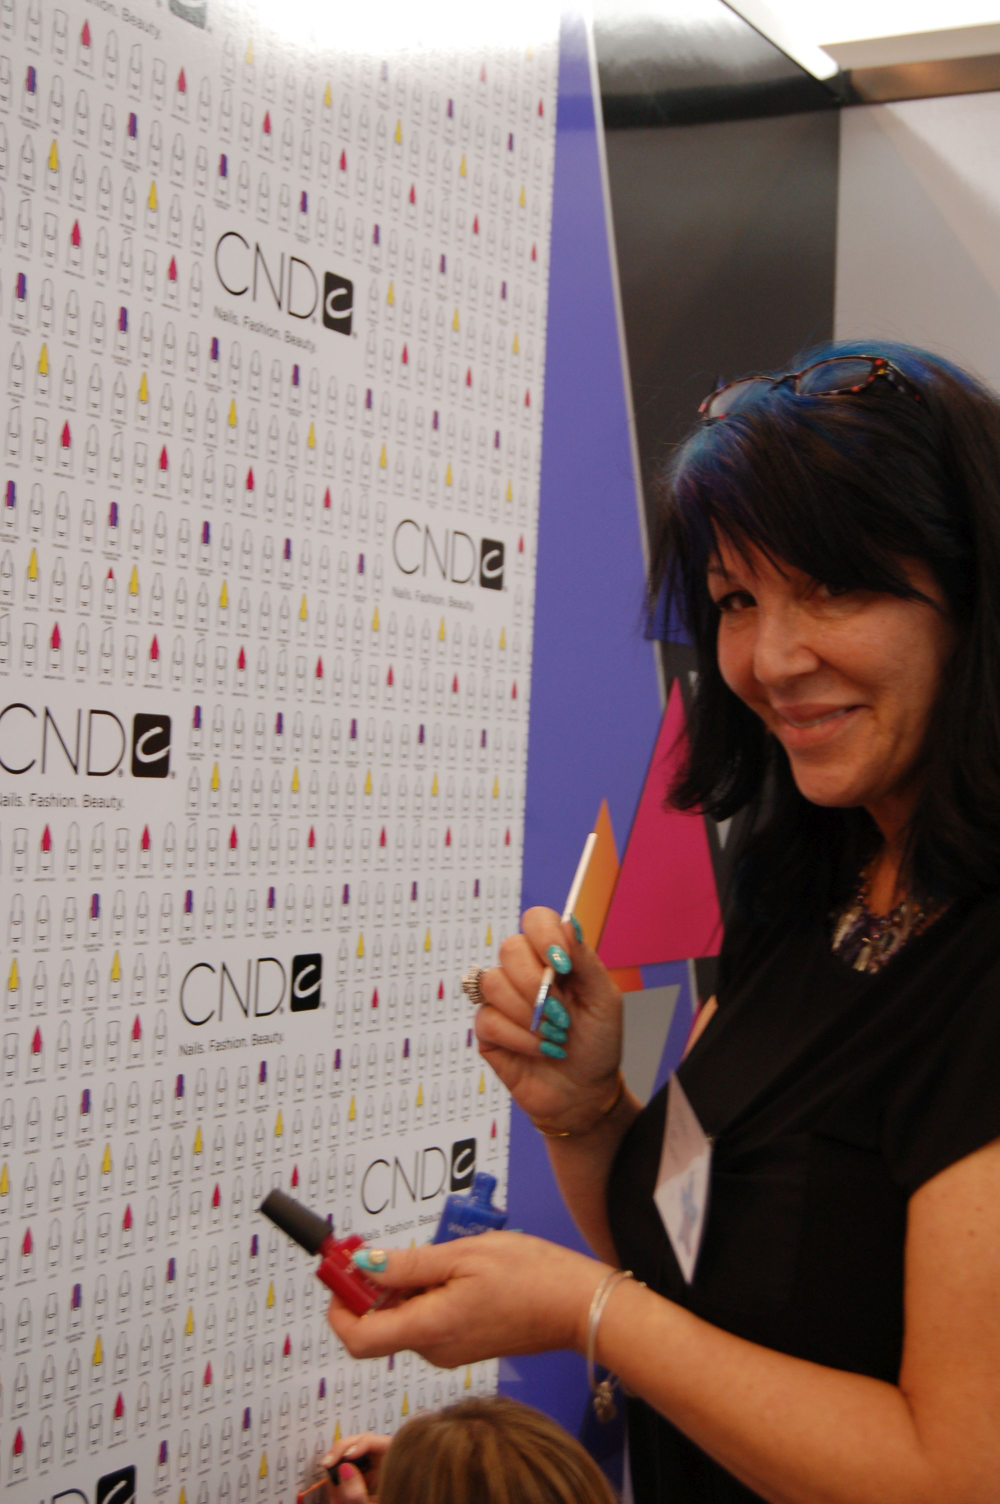 <p>Athena Elliott using Vinylux to polish the CND booth</p>